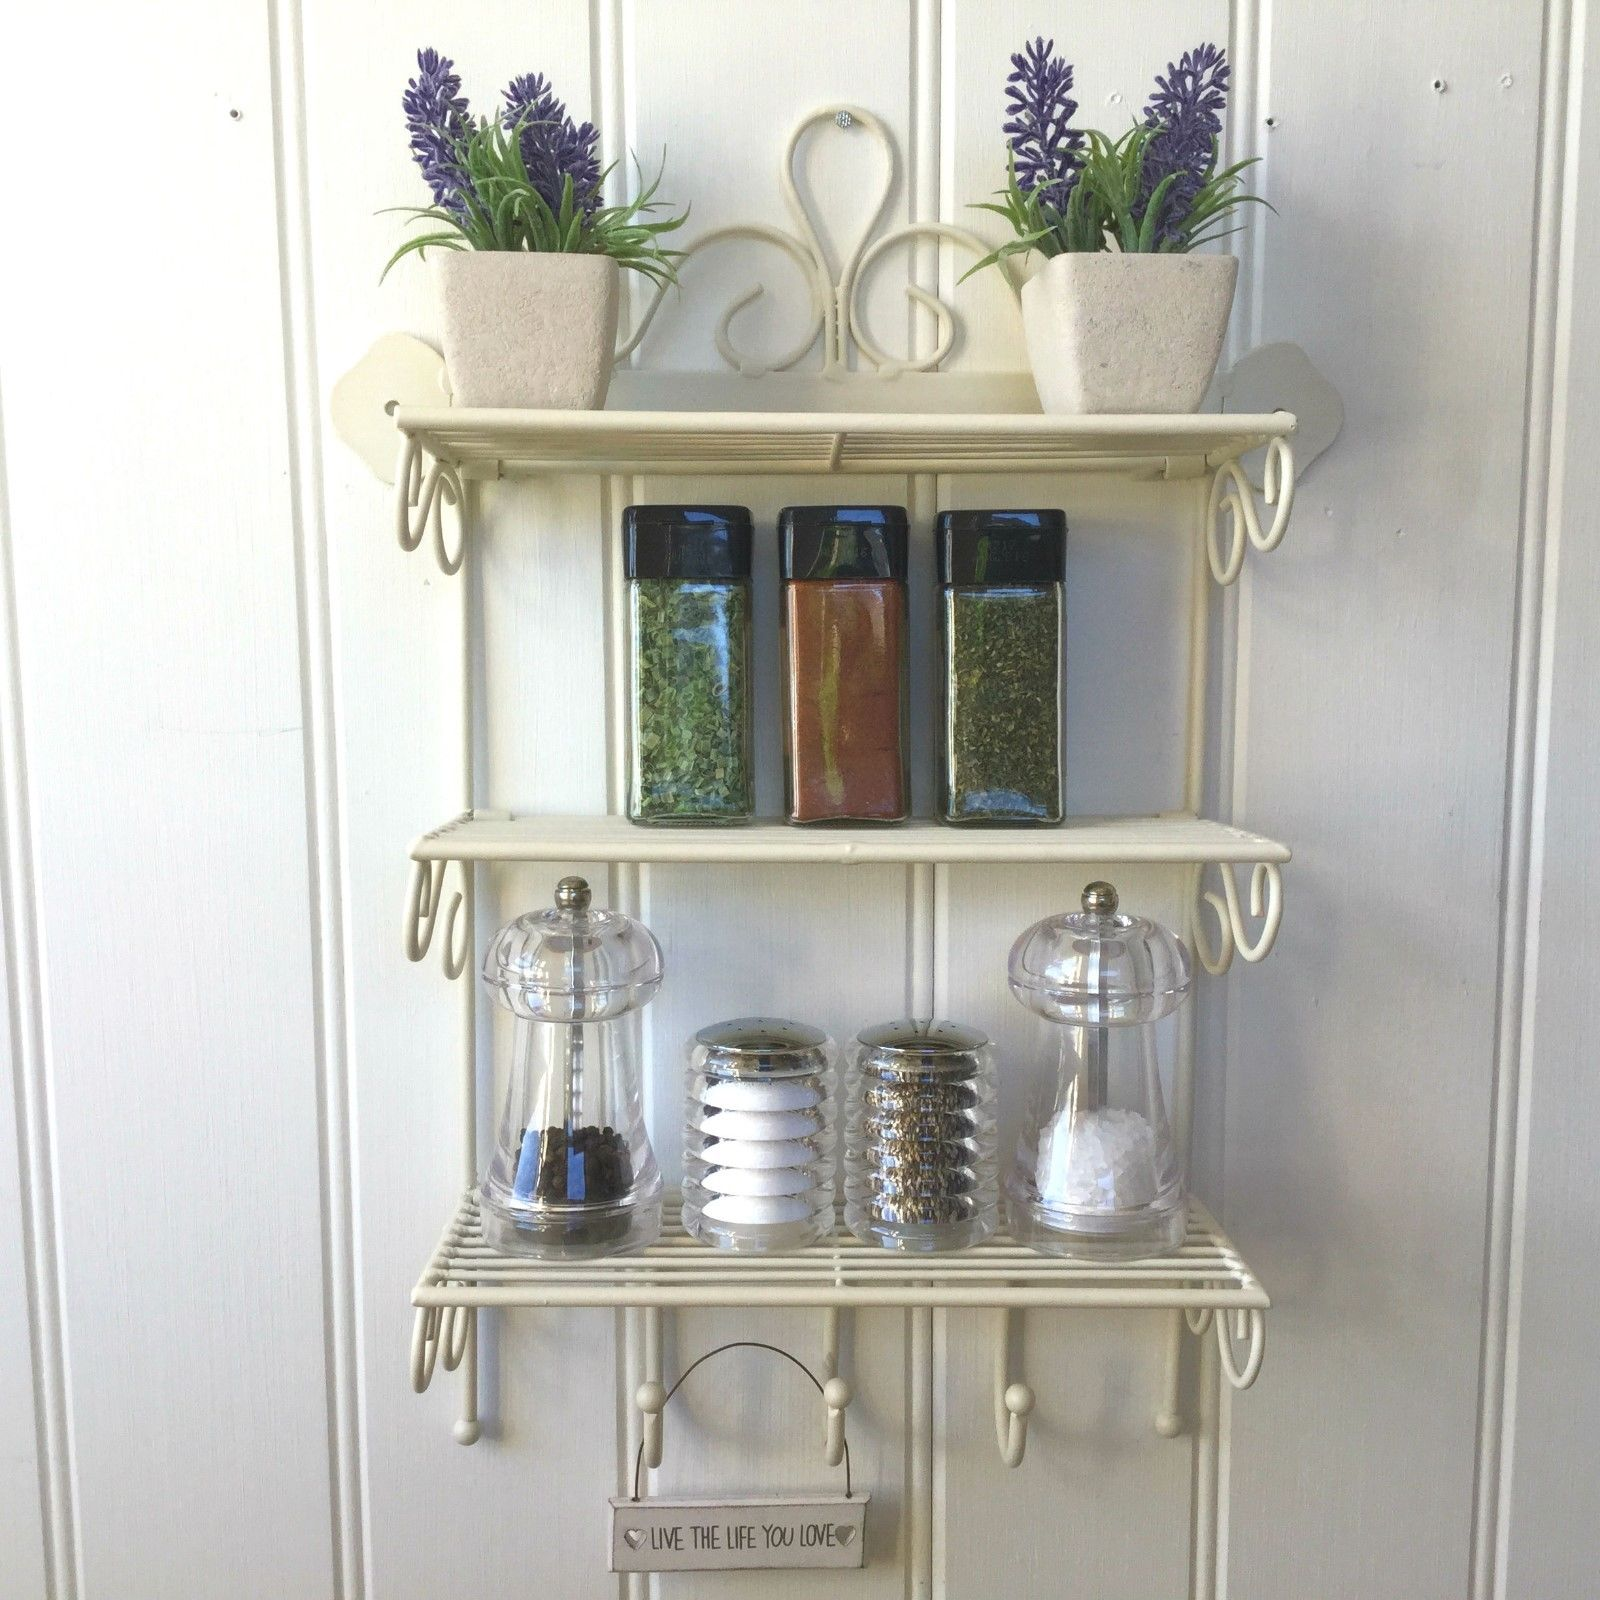 metal kitchen storage racks shabby chic metal wall shelf unit hooks storage kitchen 7468